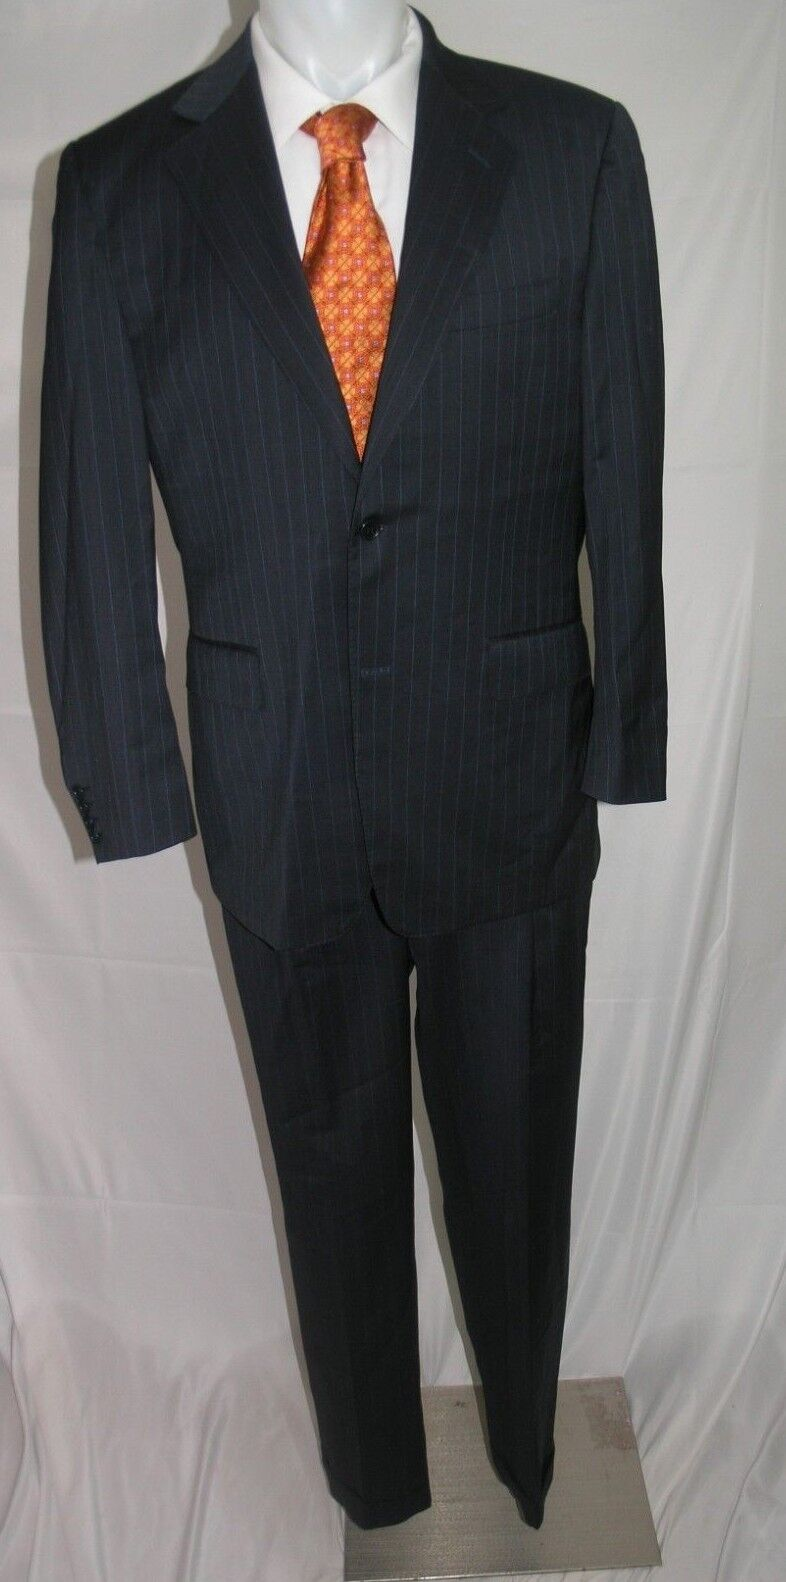 Canali Natural Comfort Two Button All Season Suit 40 R 34 x 31